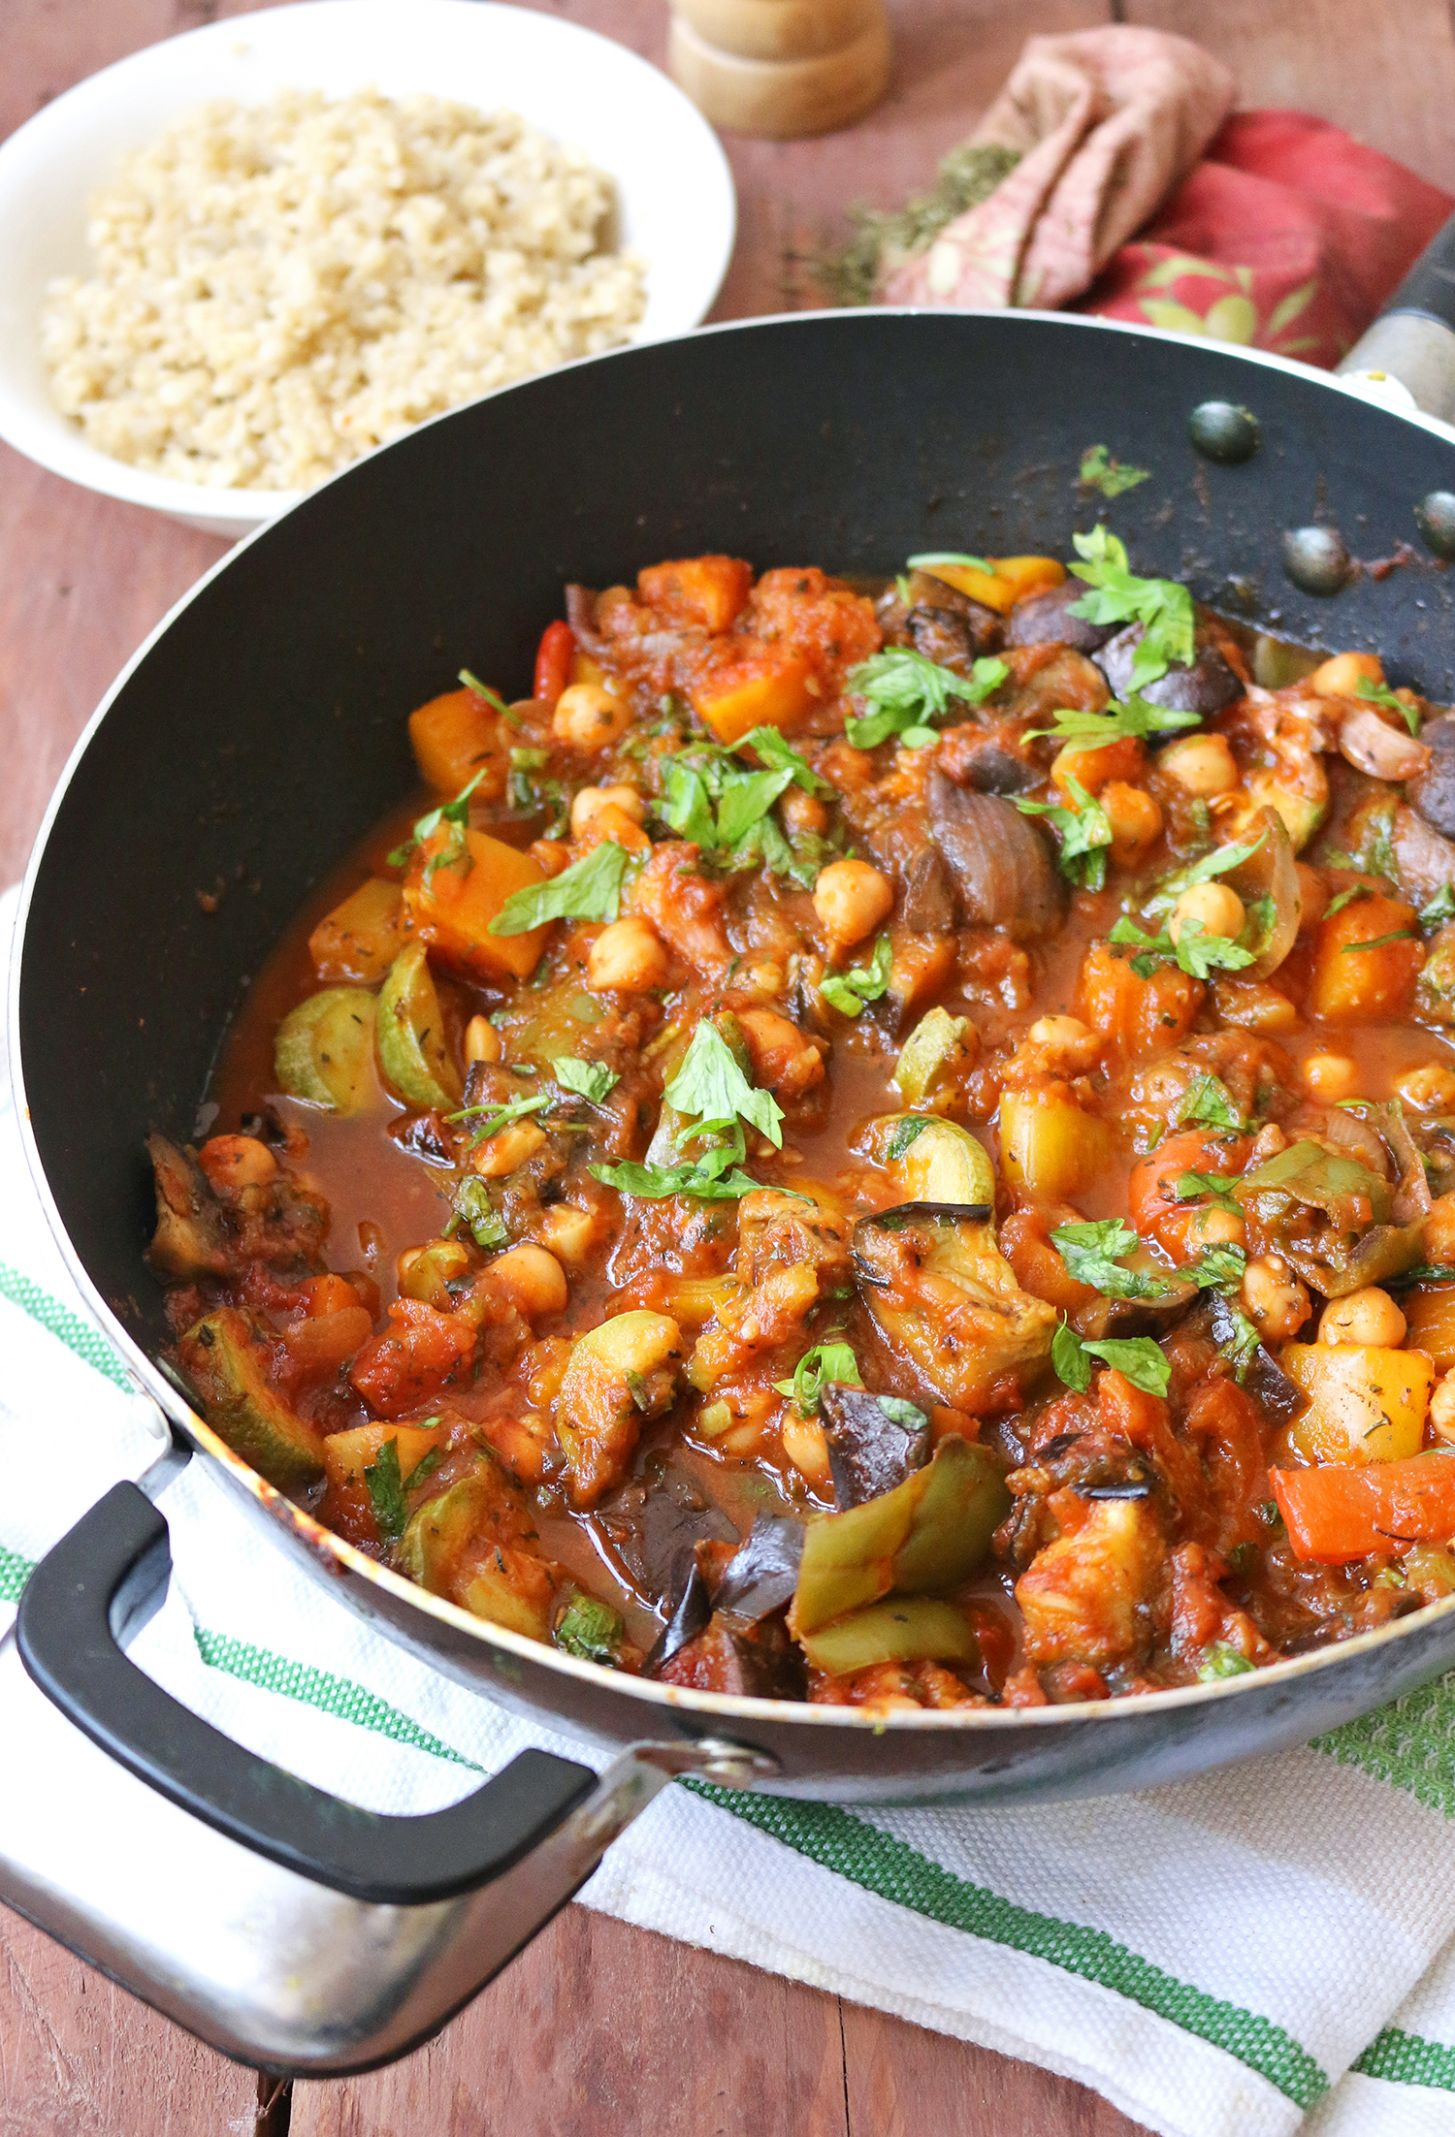 Mediterranean Vegetable and Chickpea Stew - Healthy Recipes Vegetarian Blog